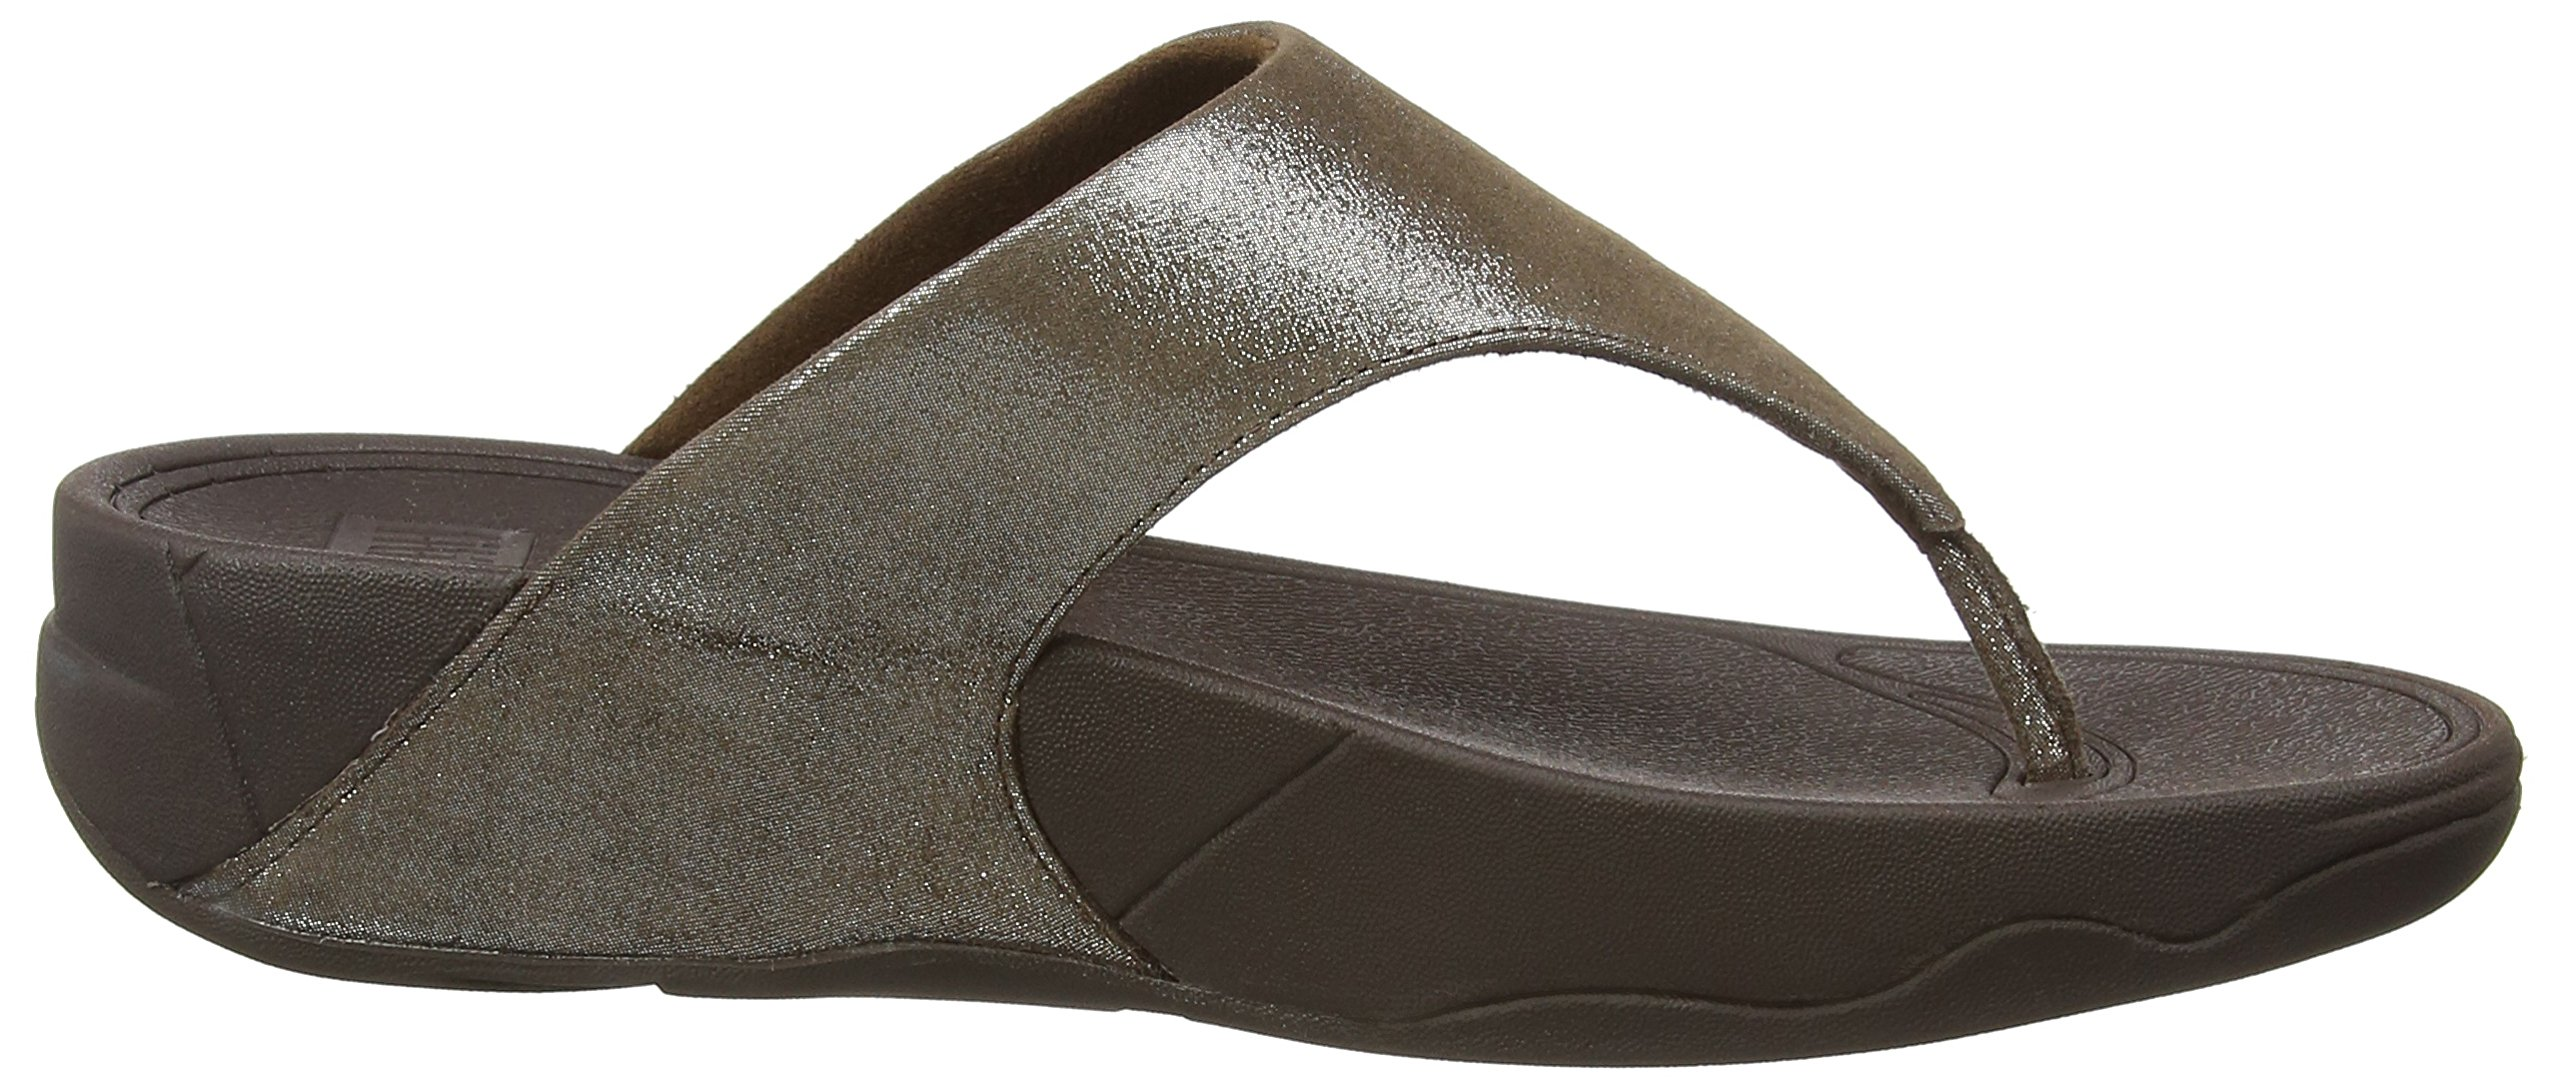 FitFlop Women's Lulu Shimmersuede Flip Flop, Bronze, 9 M US by FitFlop (Image #7)